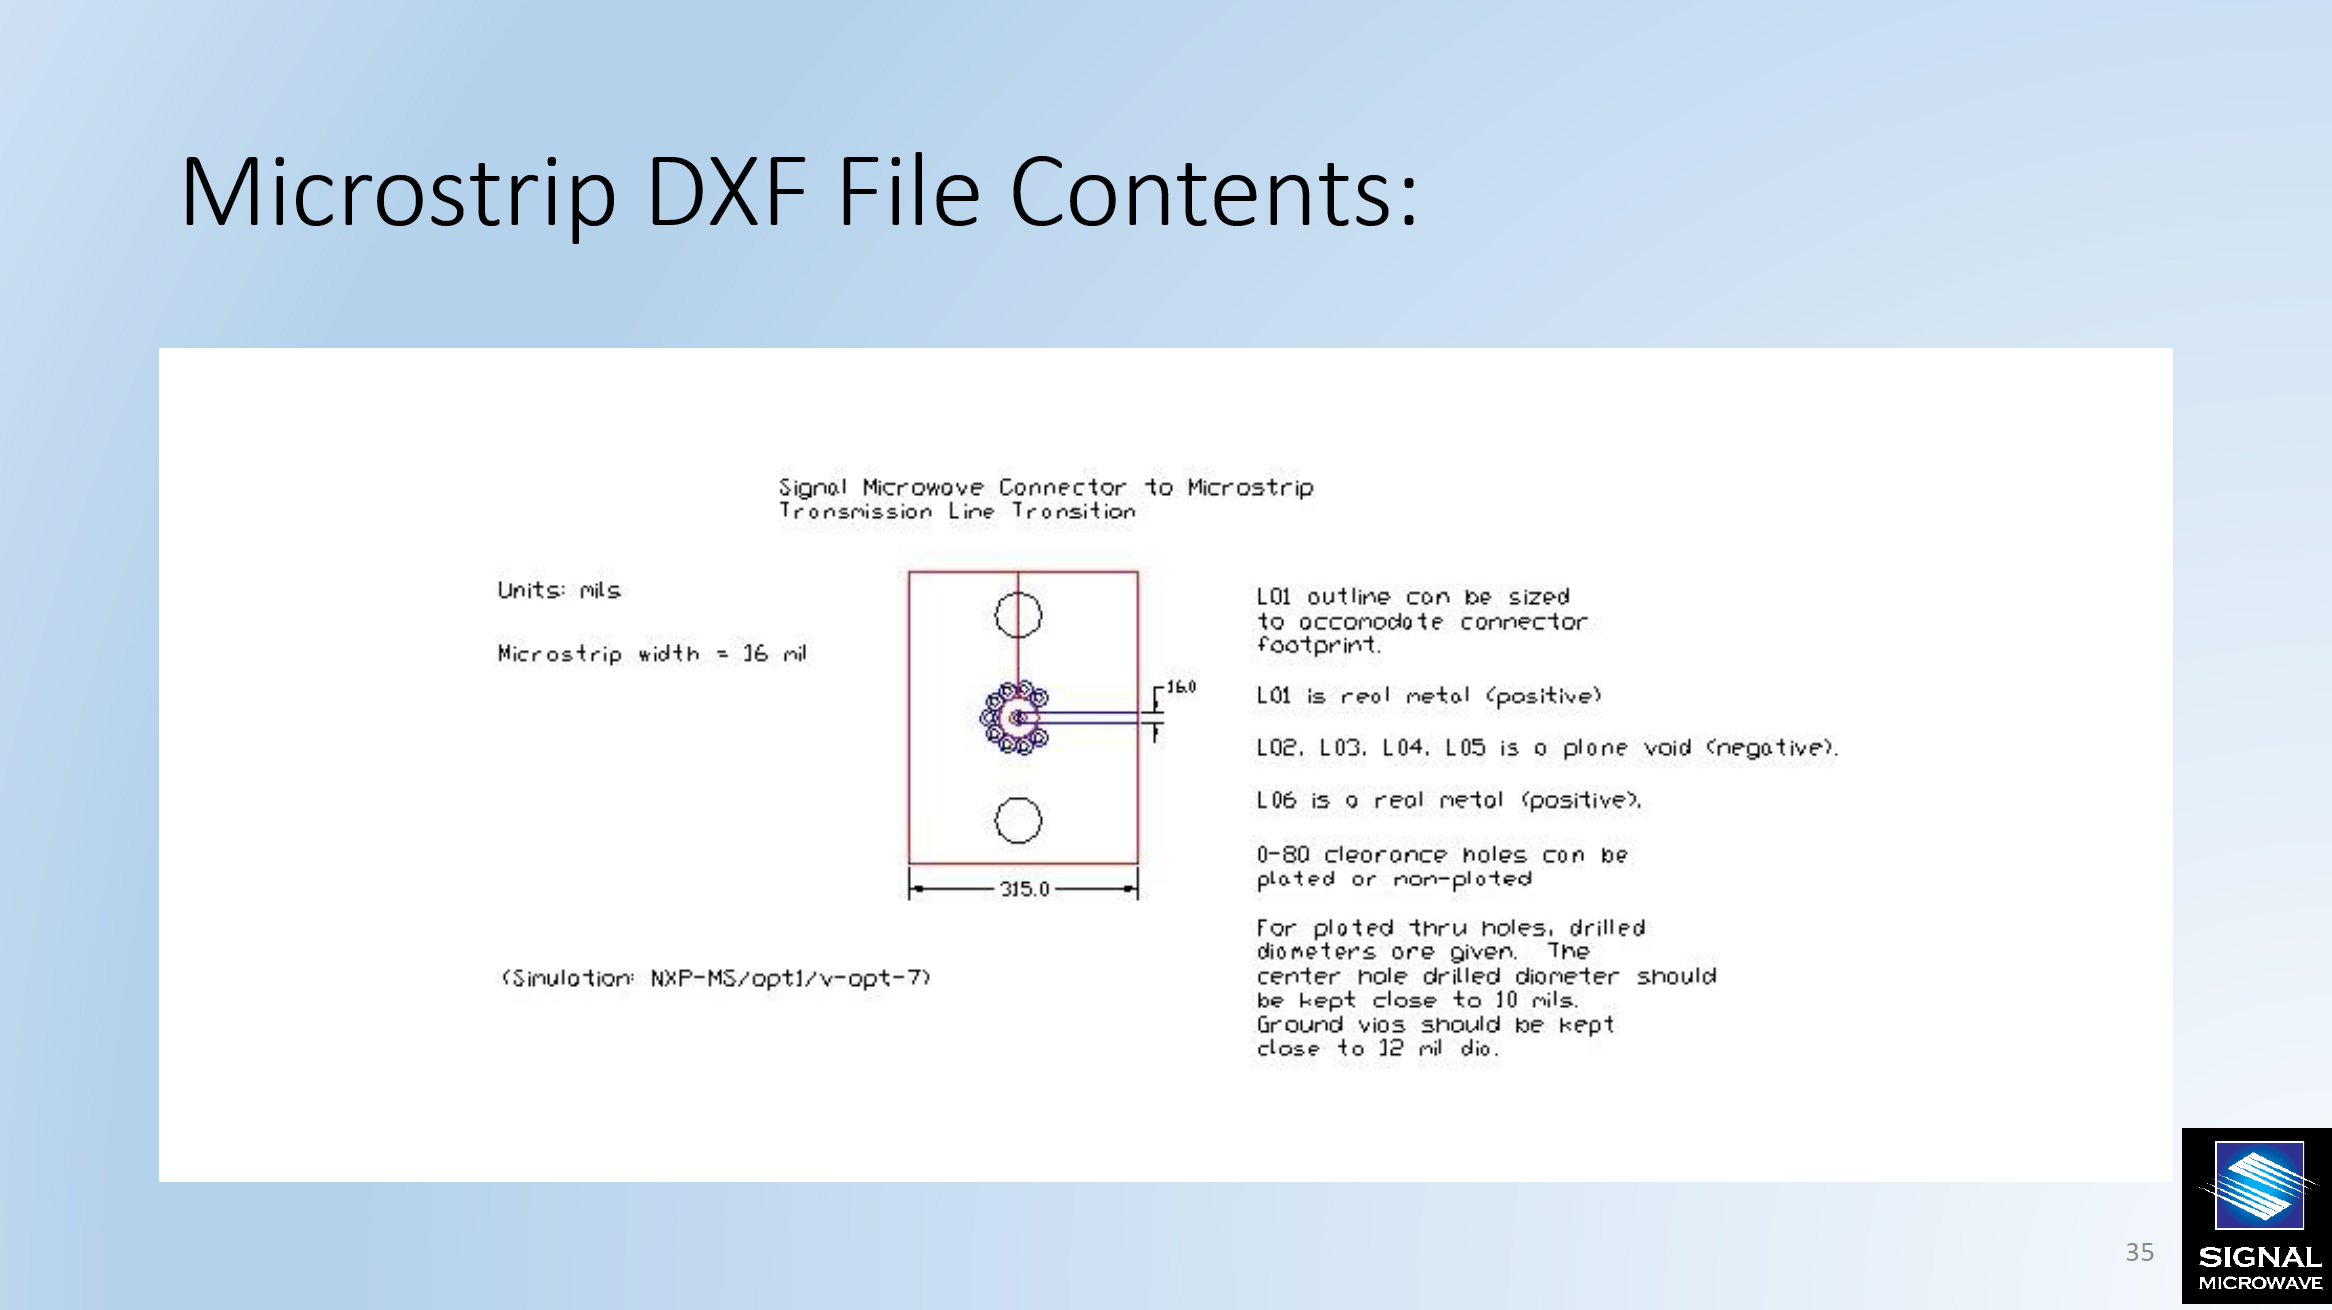 Microstrip DXF File Contents